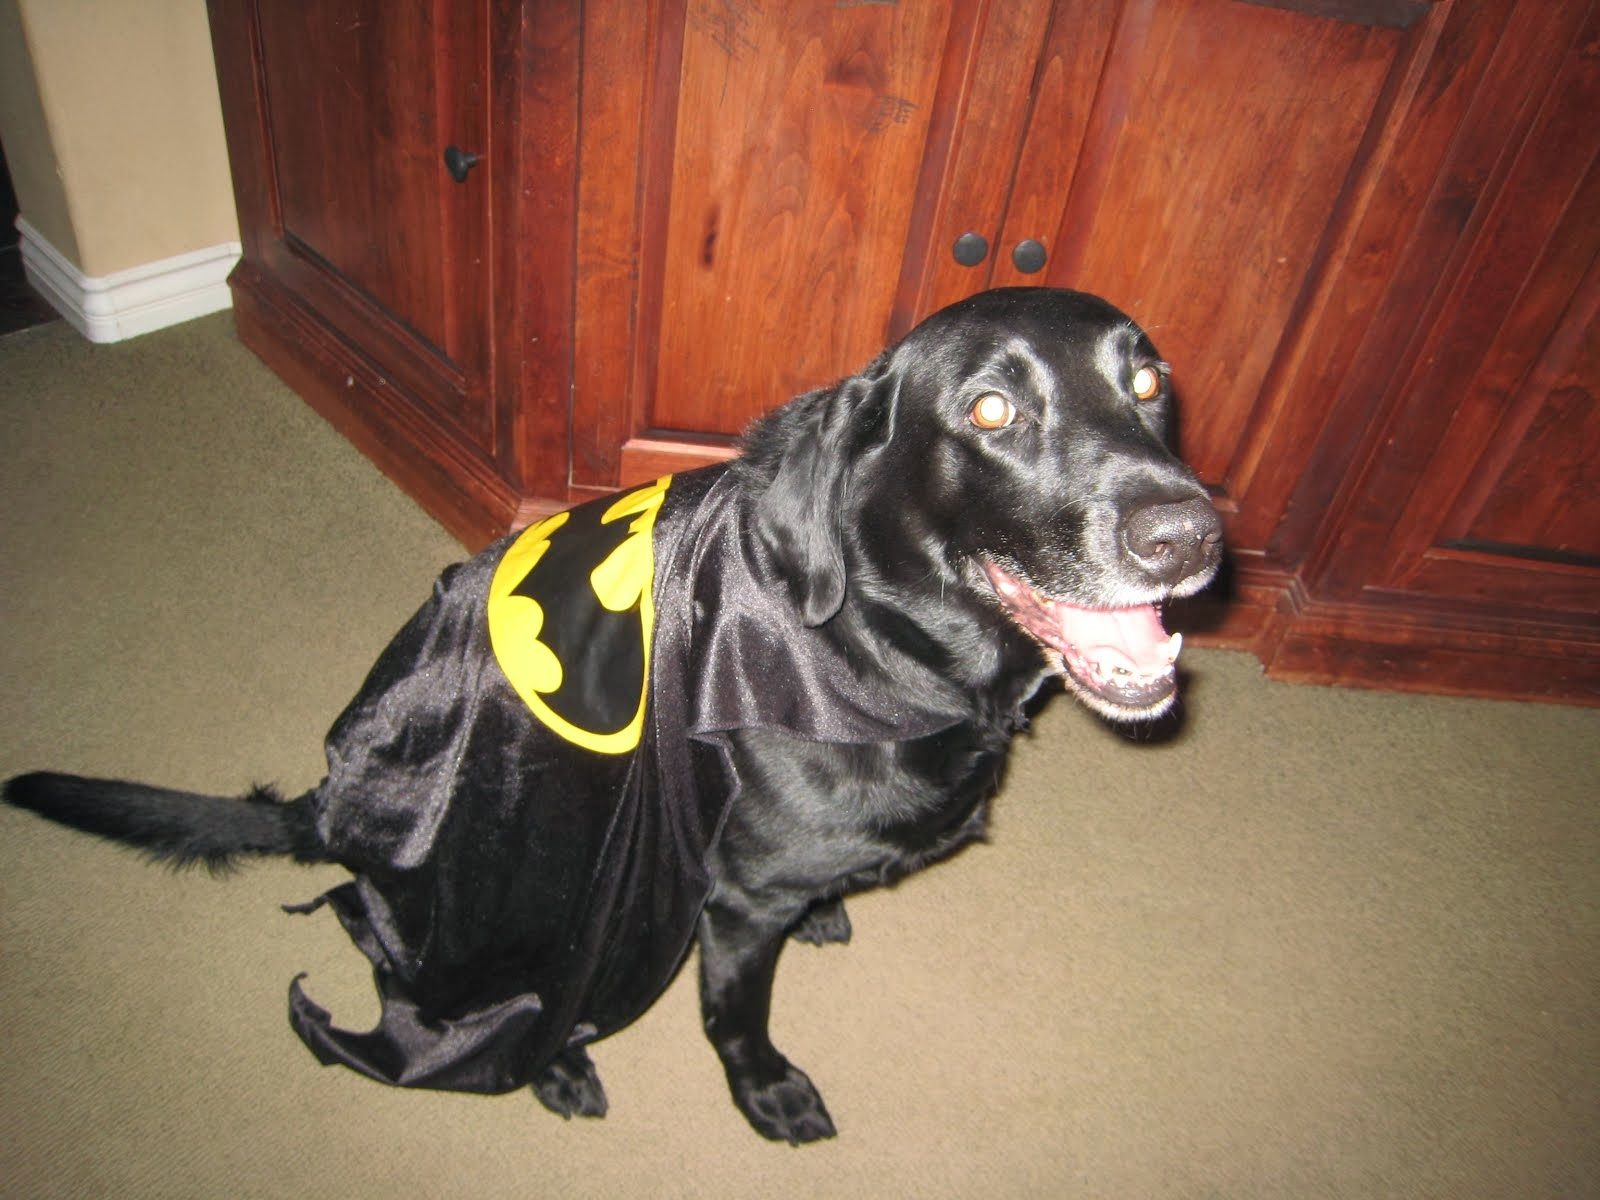 Is That Batdog?